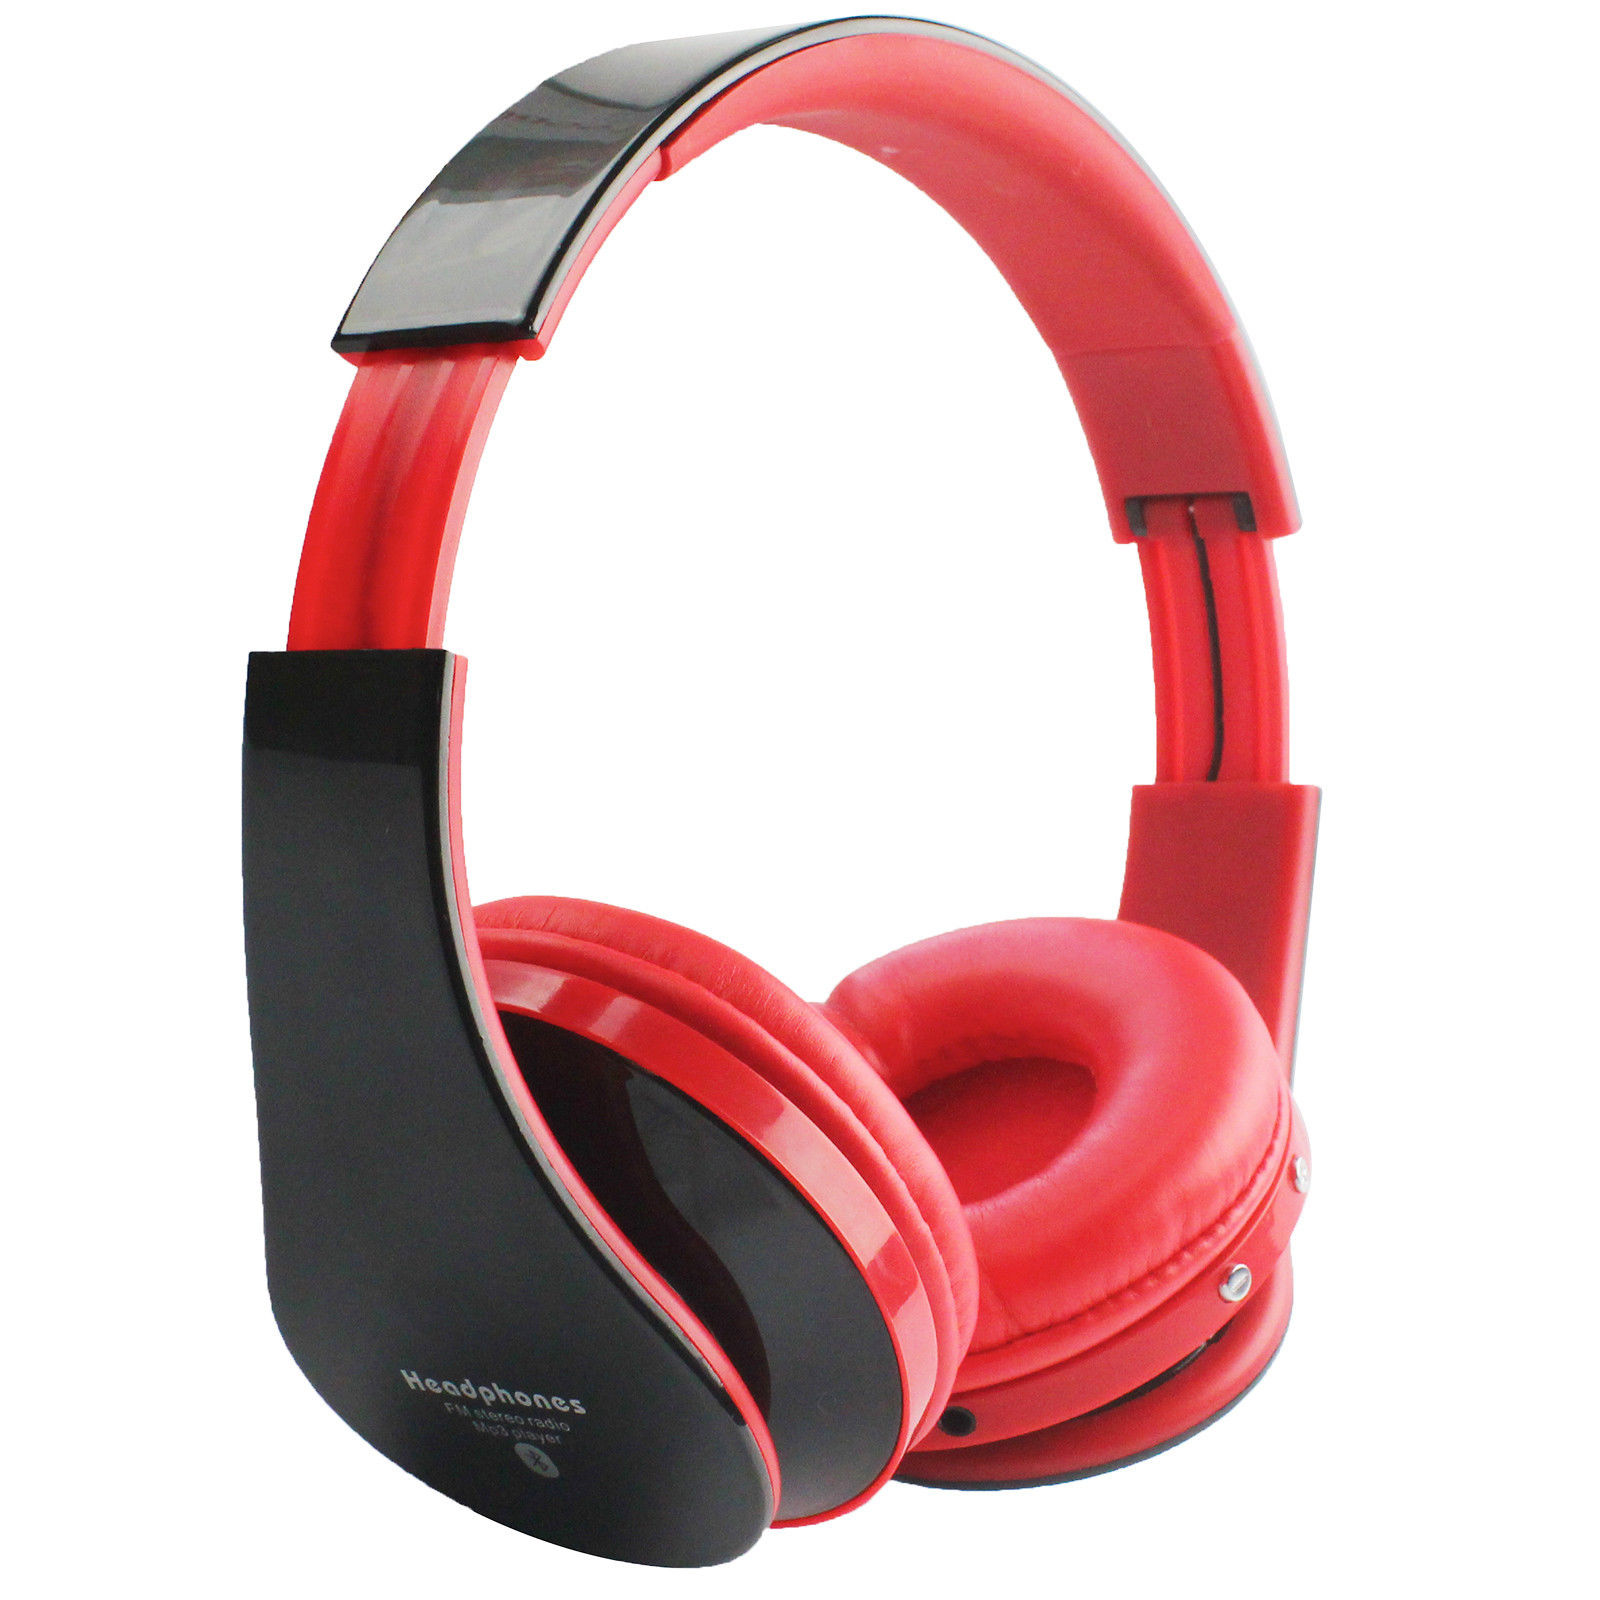 foldable wireless bluetooth 2 ch stereo headset headphone for pc iphone laptop ebay. Black Bedroom Furniture Sets. Home Design Ideas